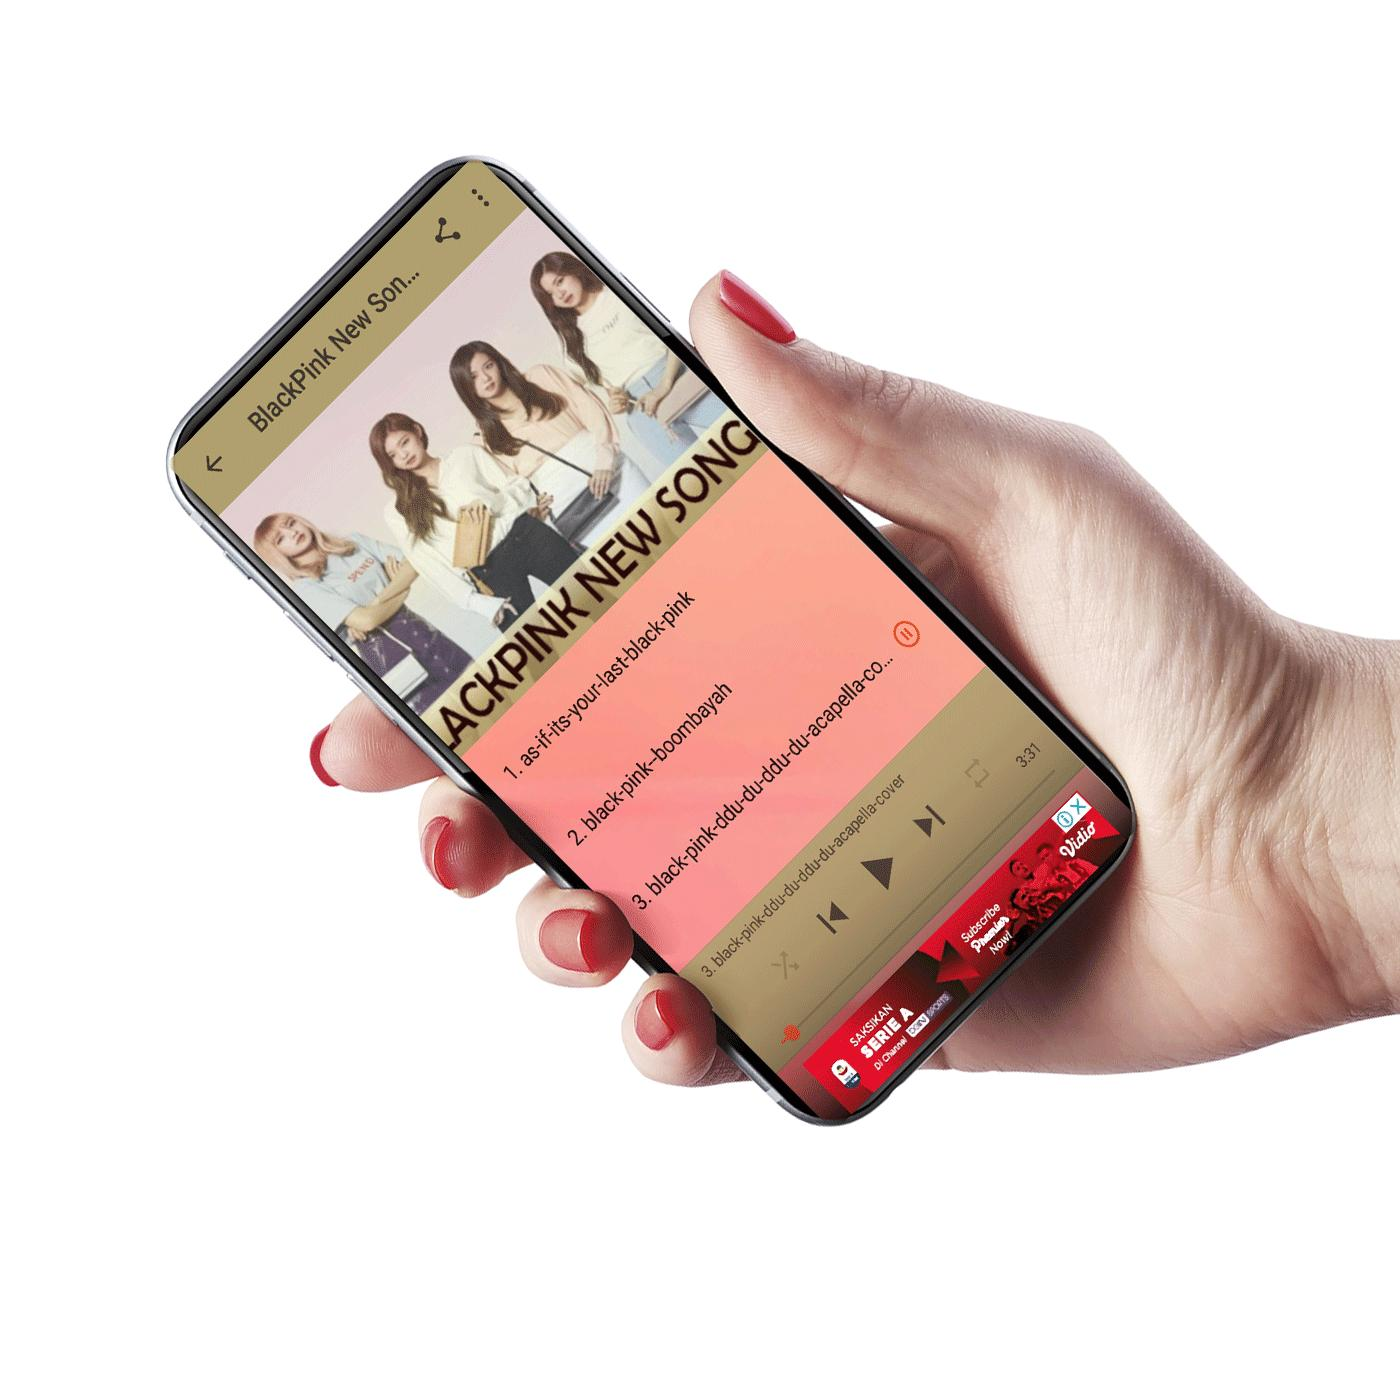 BlackPink New Songs 2019 for Android - APK Download